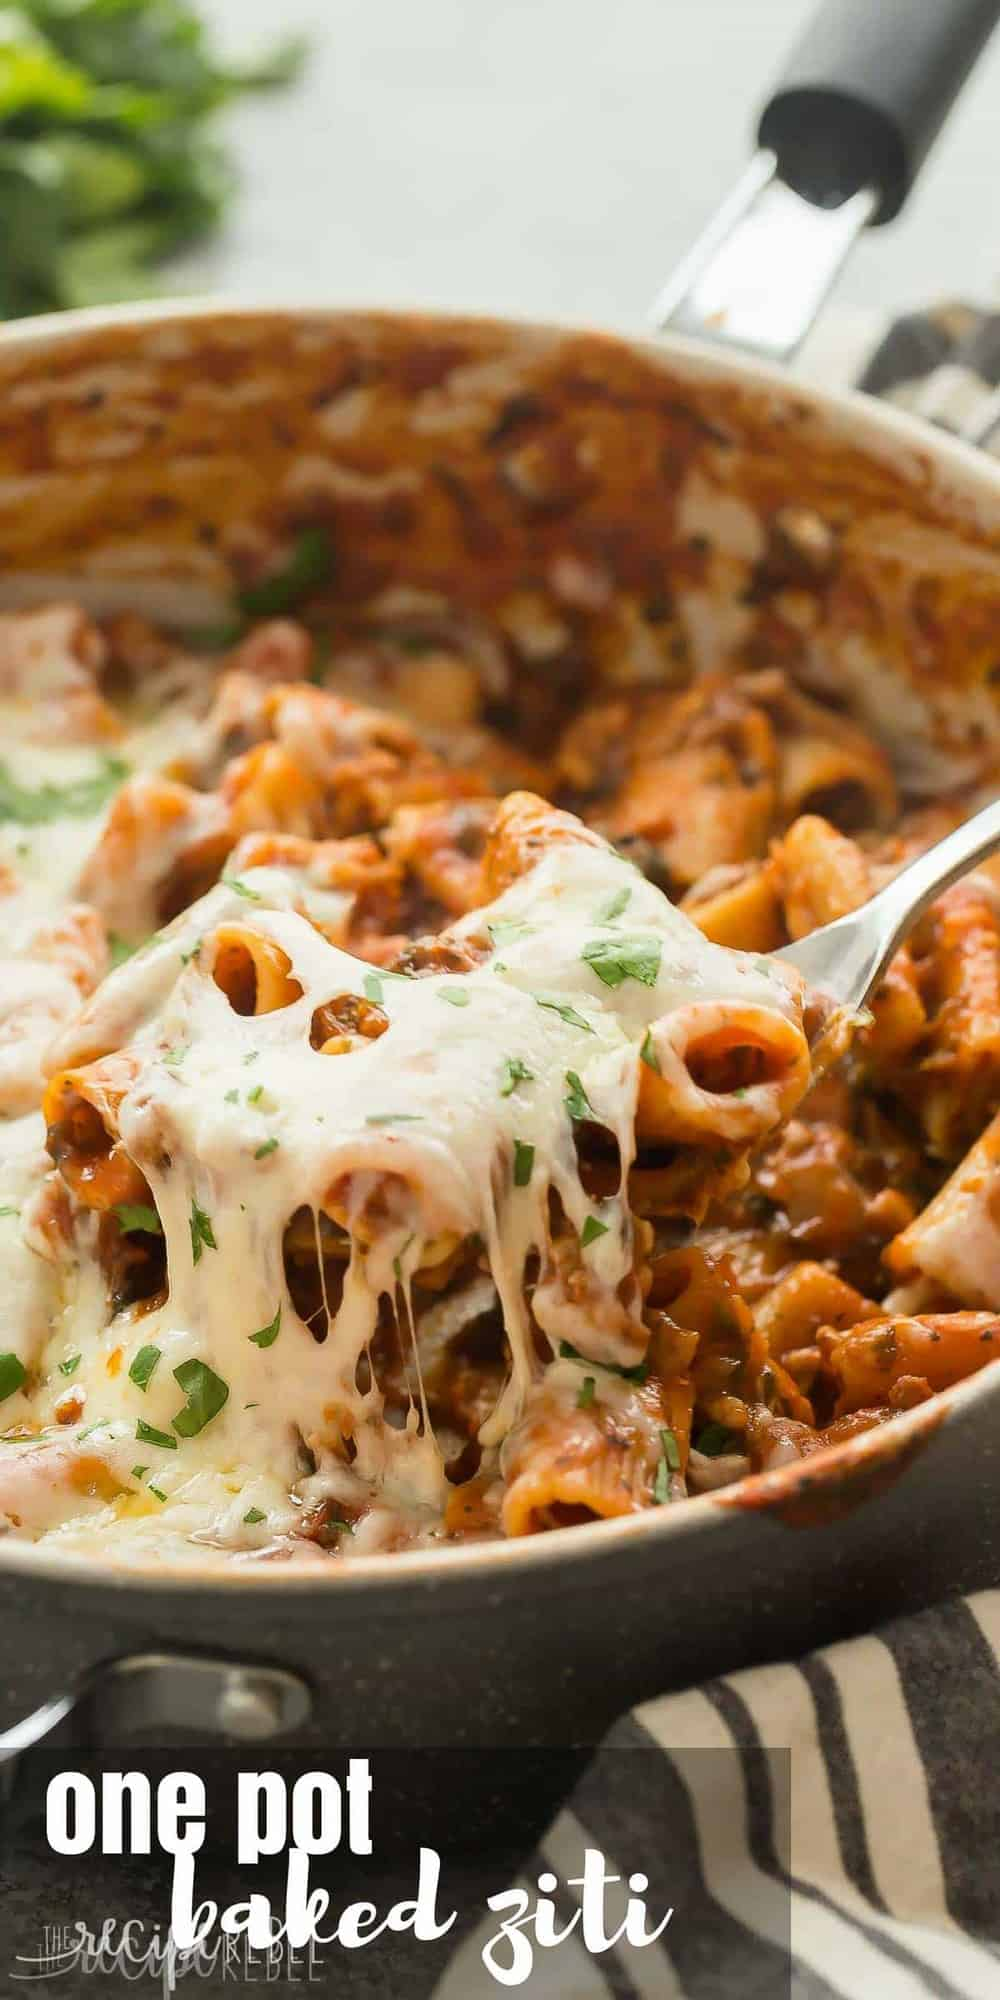 long image of one pot baked ziti being pulled out of skillet with spoon